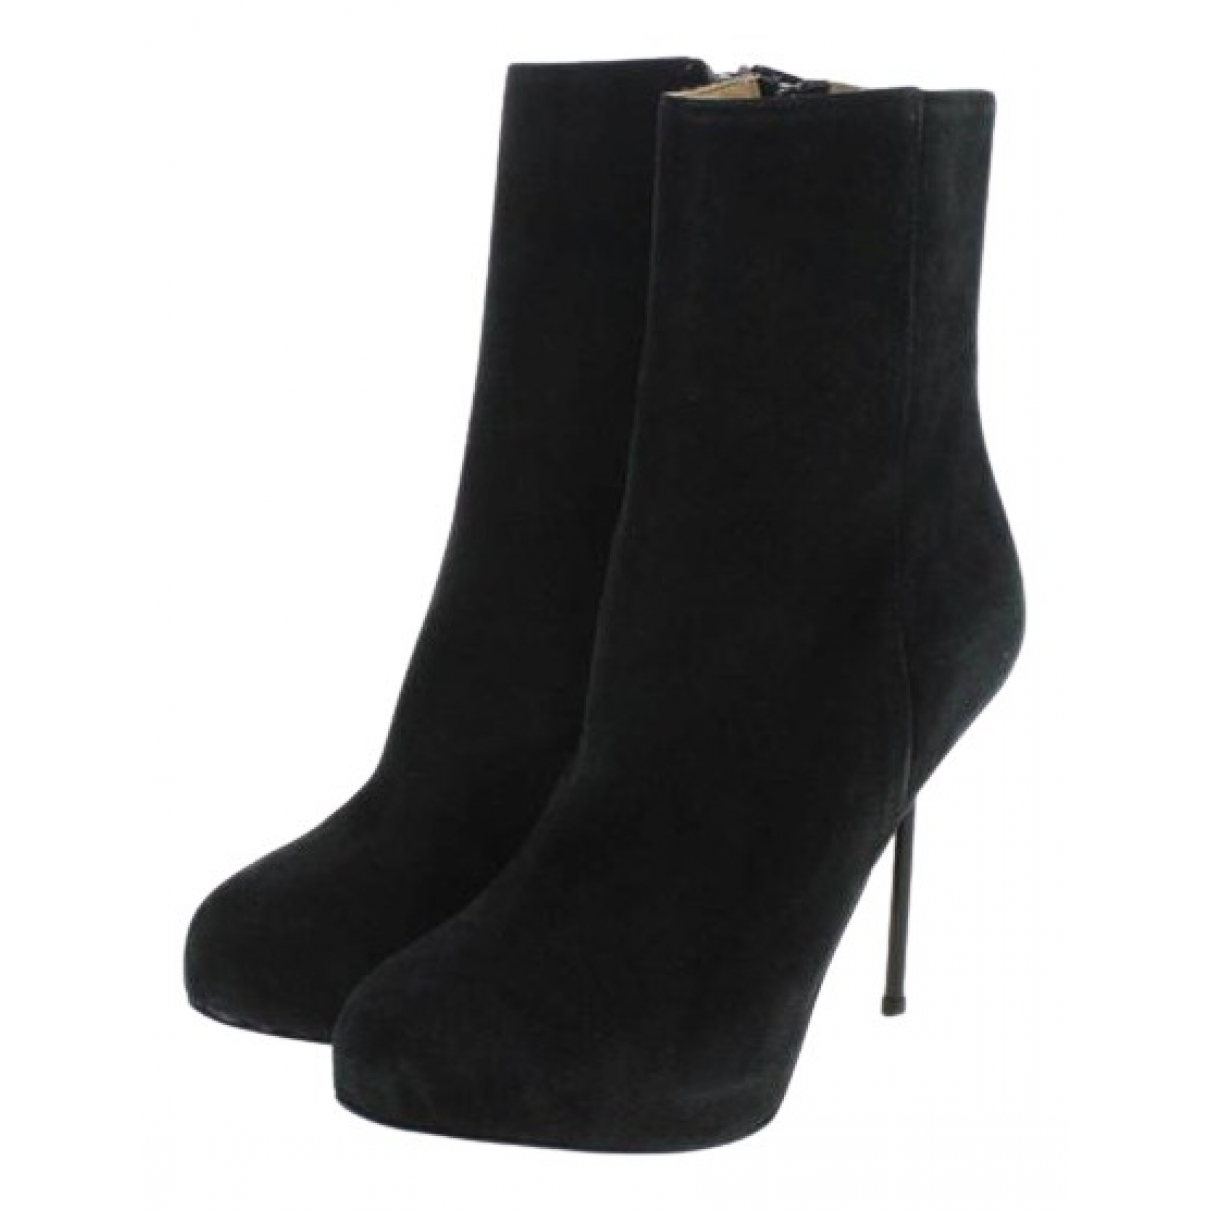 Acne Studios \N Black Suede Ankle boots for Women 36 EU